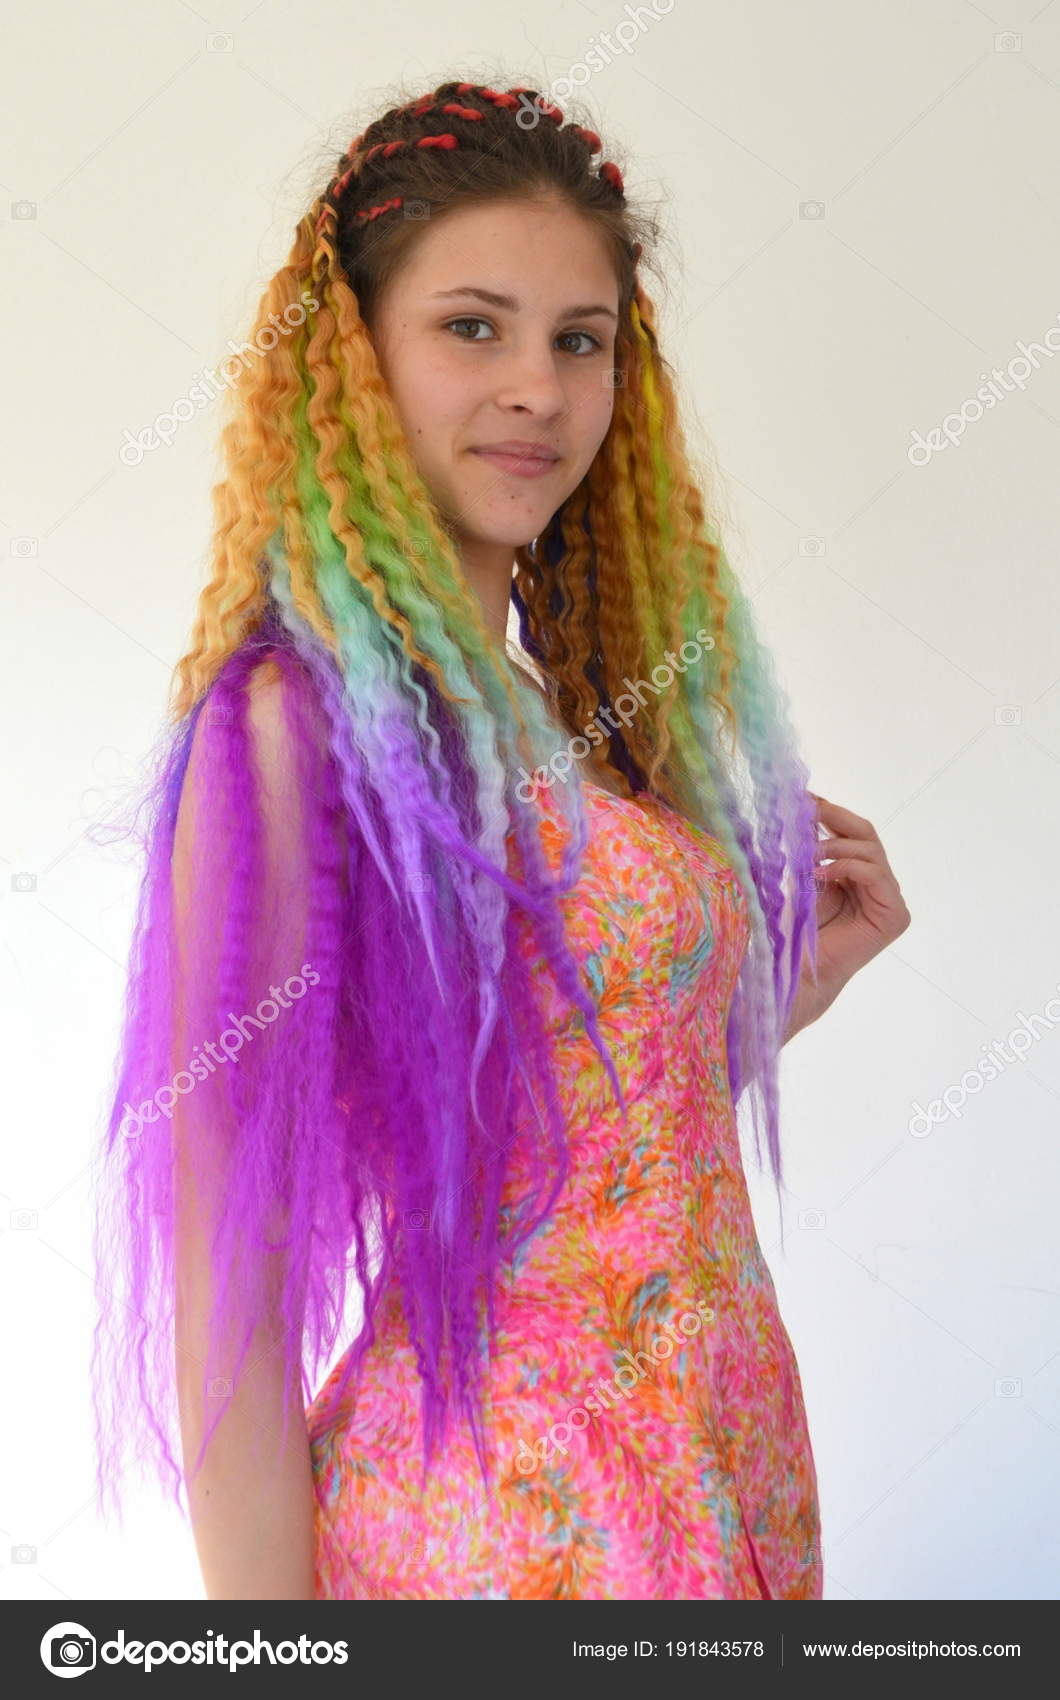 Bright Stylish Image Girl Purple Hair Technique Hair Extensions